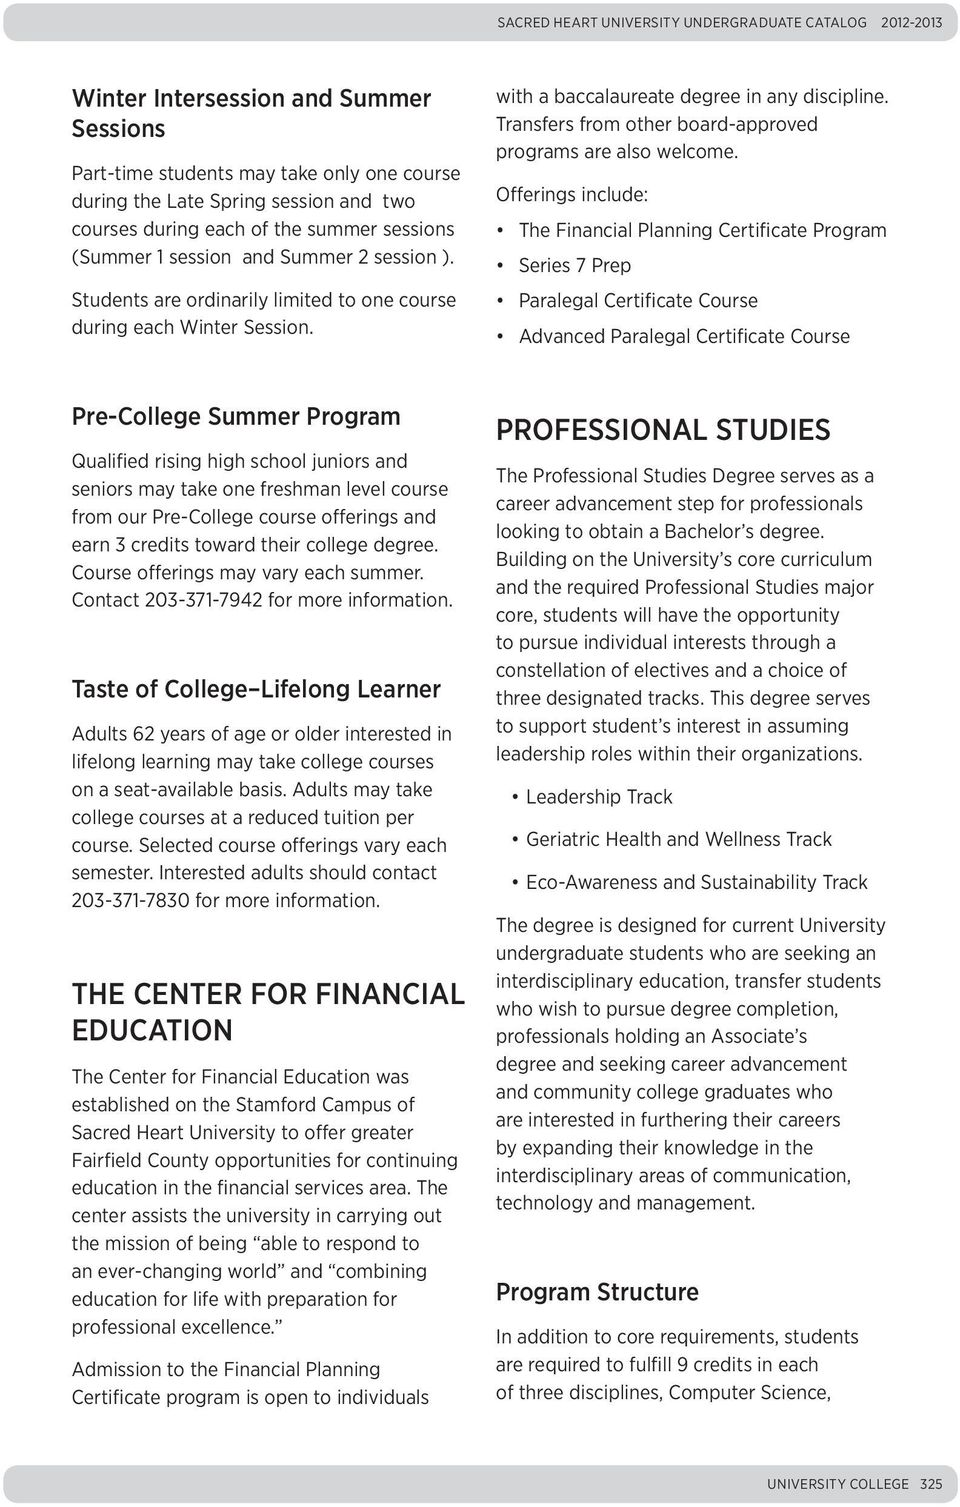 University College ADMISSIONS PROCESS FOR PART-TIME STUDY - PDF